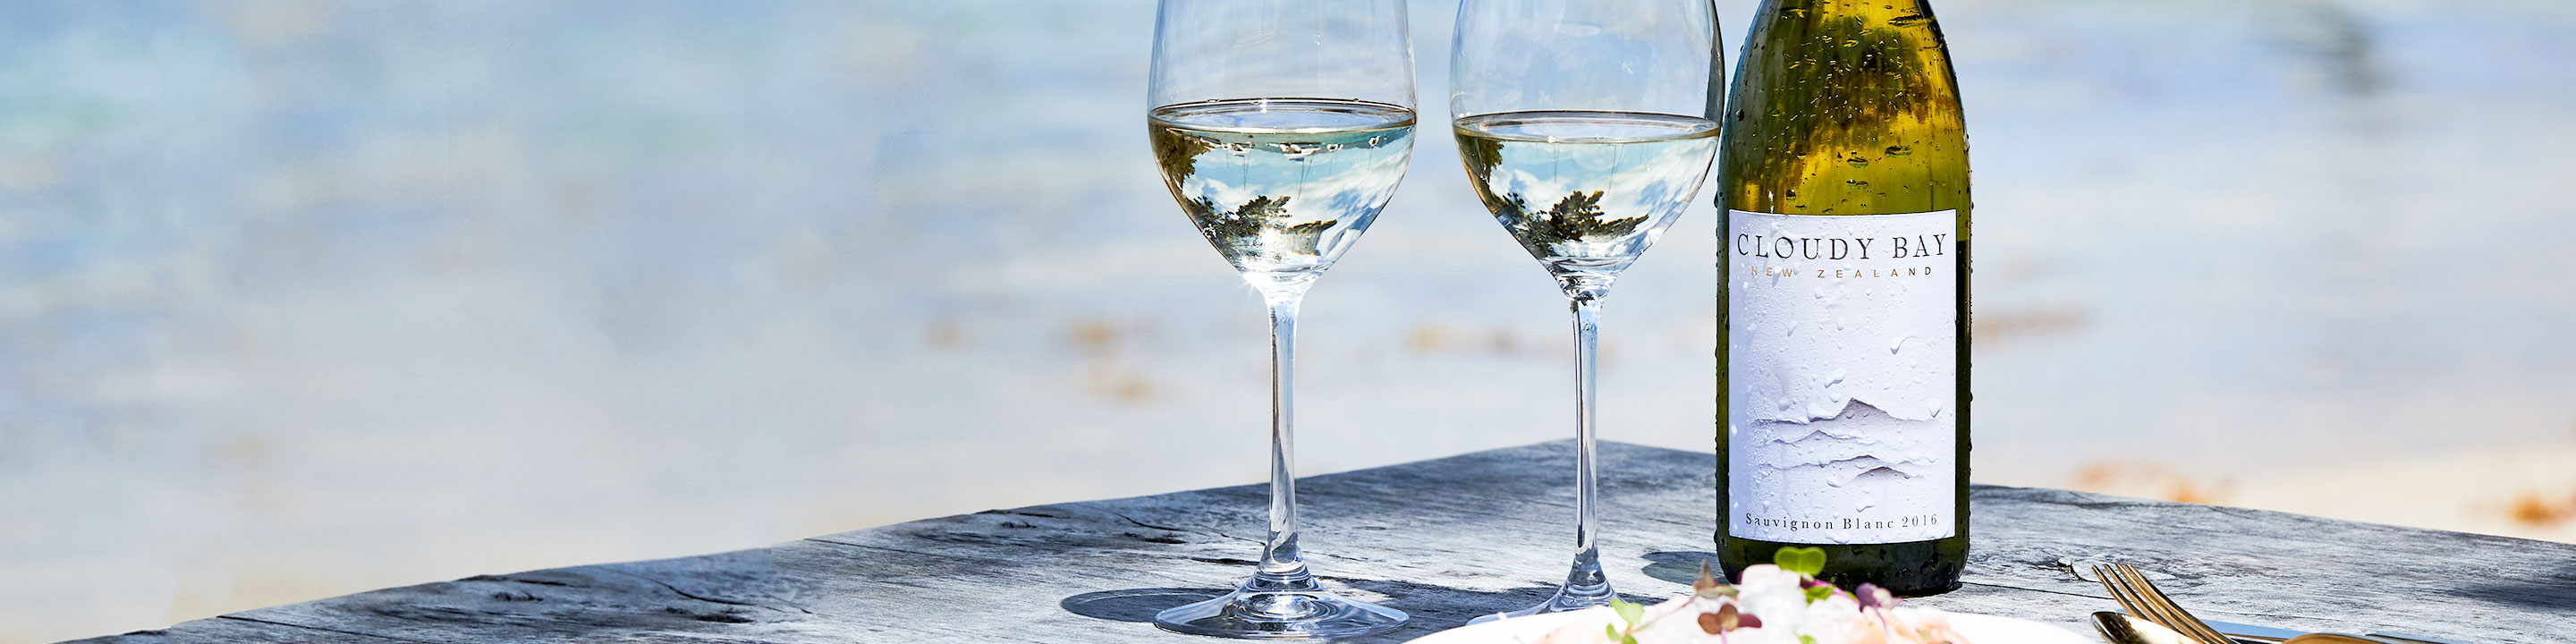 Cloudy Bay has almost single-handedly put New Zealand wines on the map. Its signature sauvignon blanc and chardonnay, oak-fermented Te Koko and Te Wahi pinot noir are among the benchmark wines in the Marlborough and Central Otago regions.